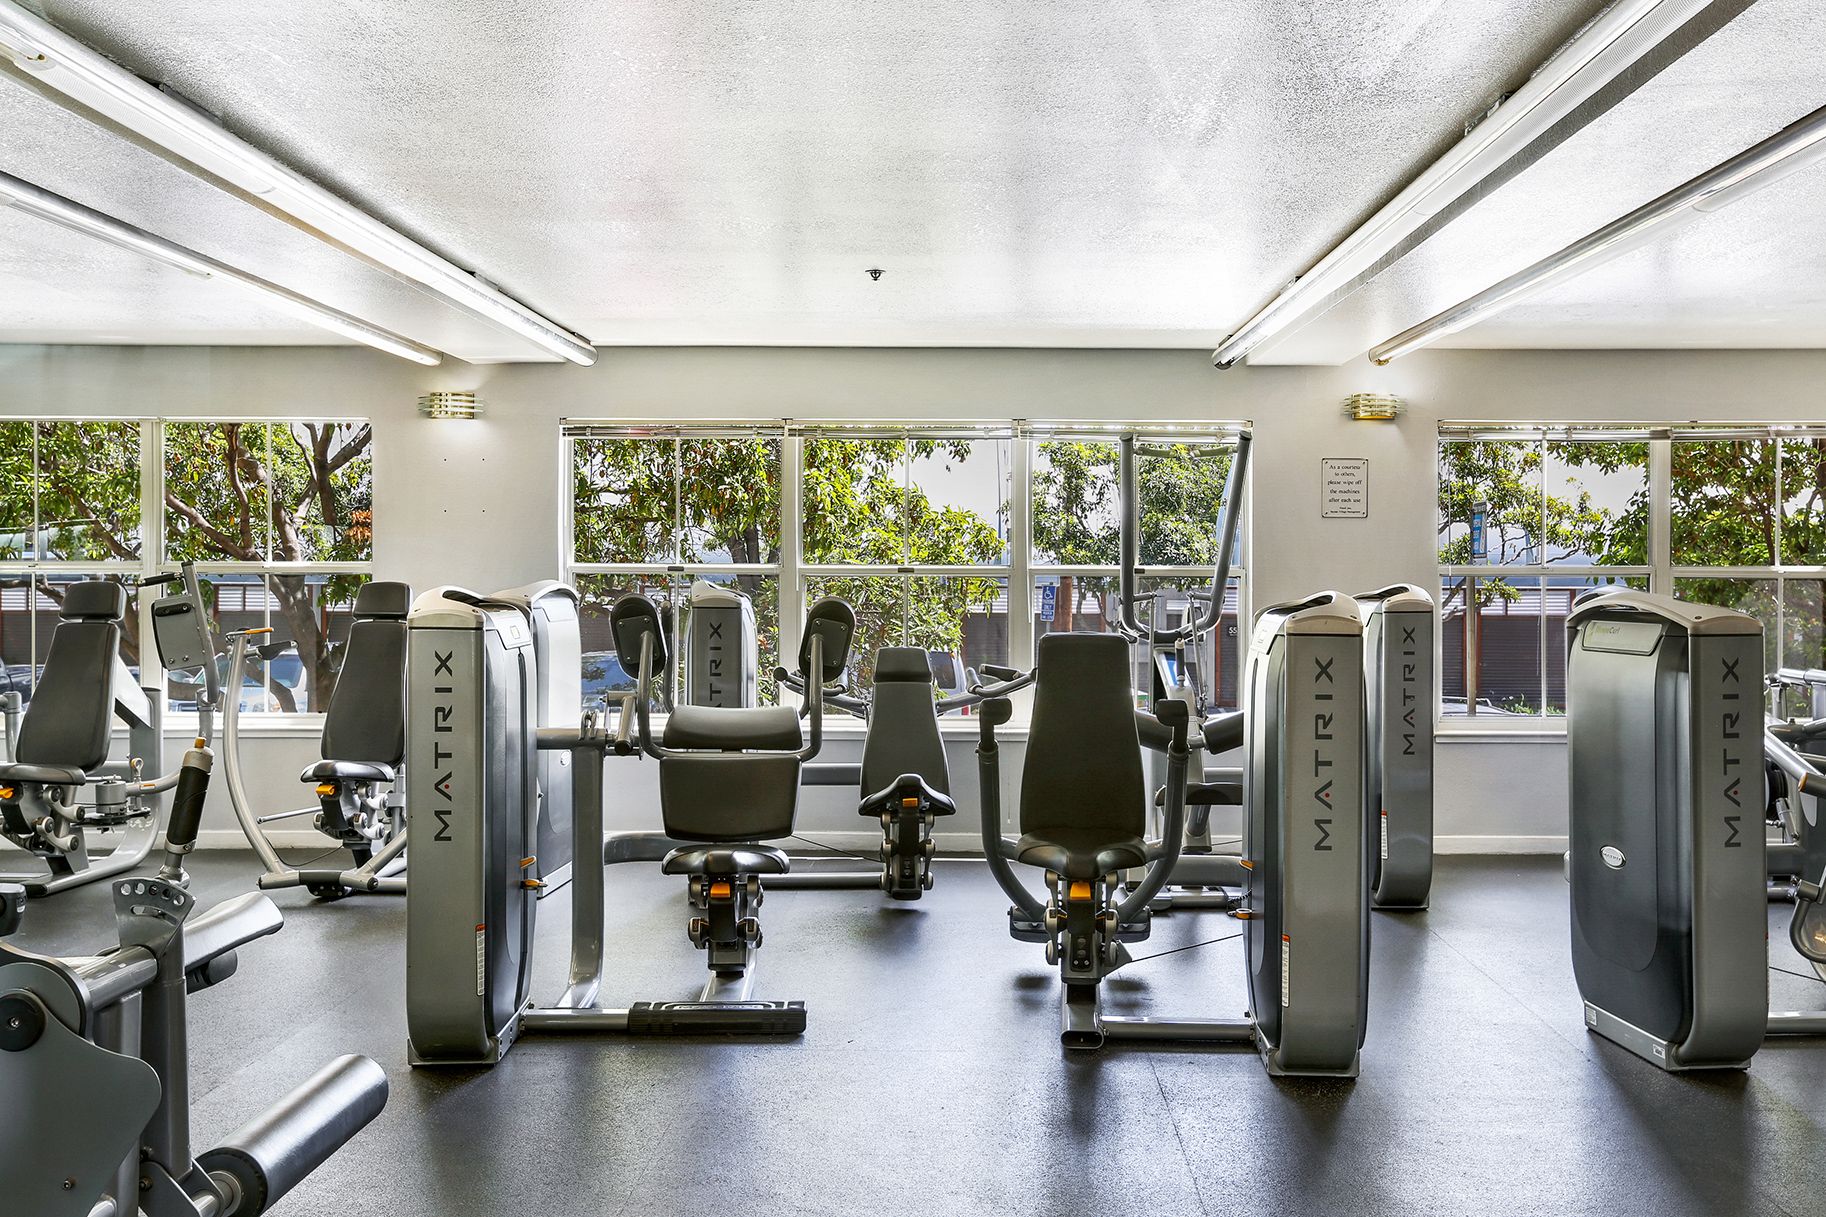 Gym of an apartment building